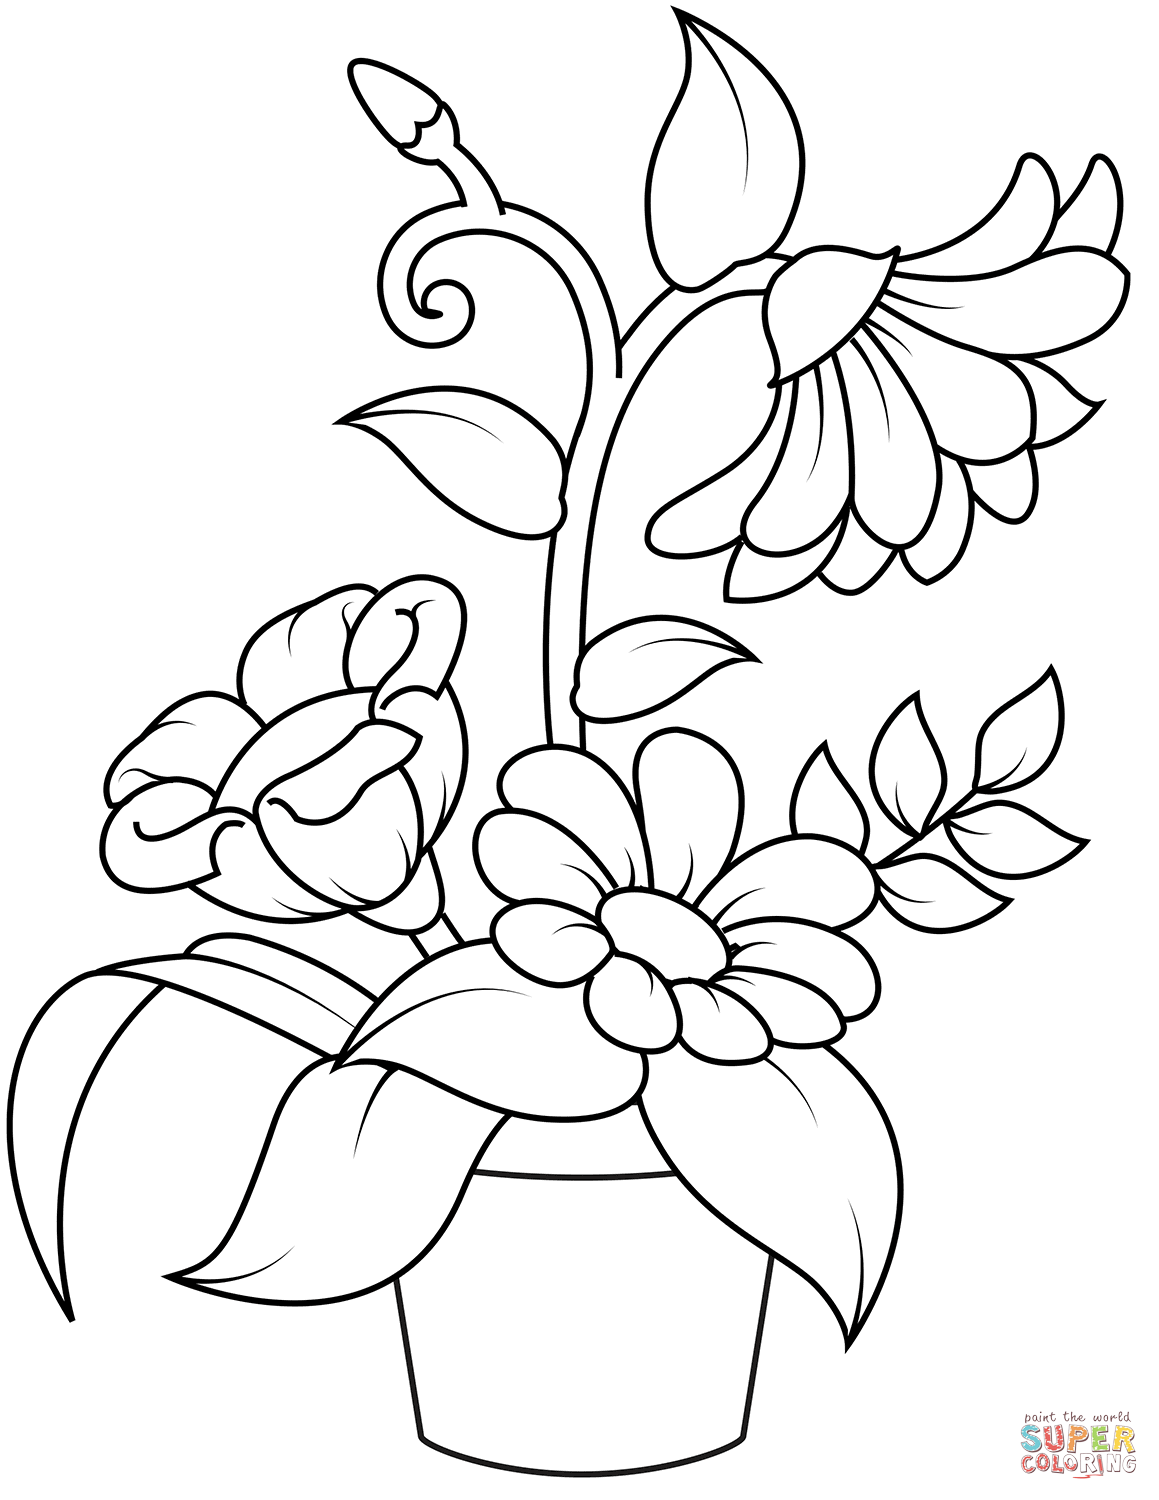 Flowerpot Coloring Page Free Printable Coloring Pages